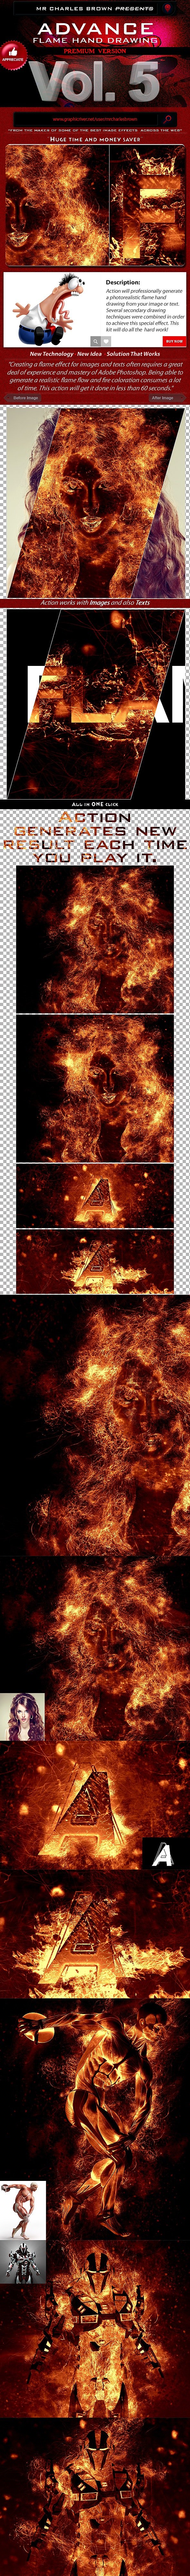 Advance Flame Hand Drawing v5 - Photo Effects Actions